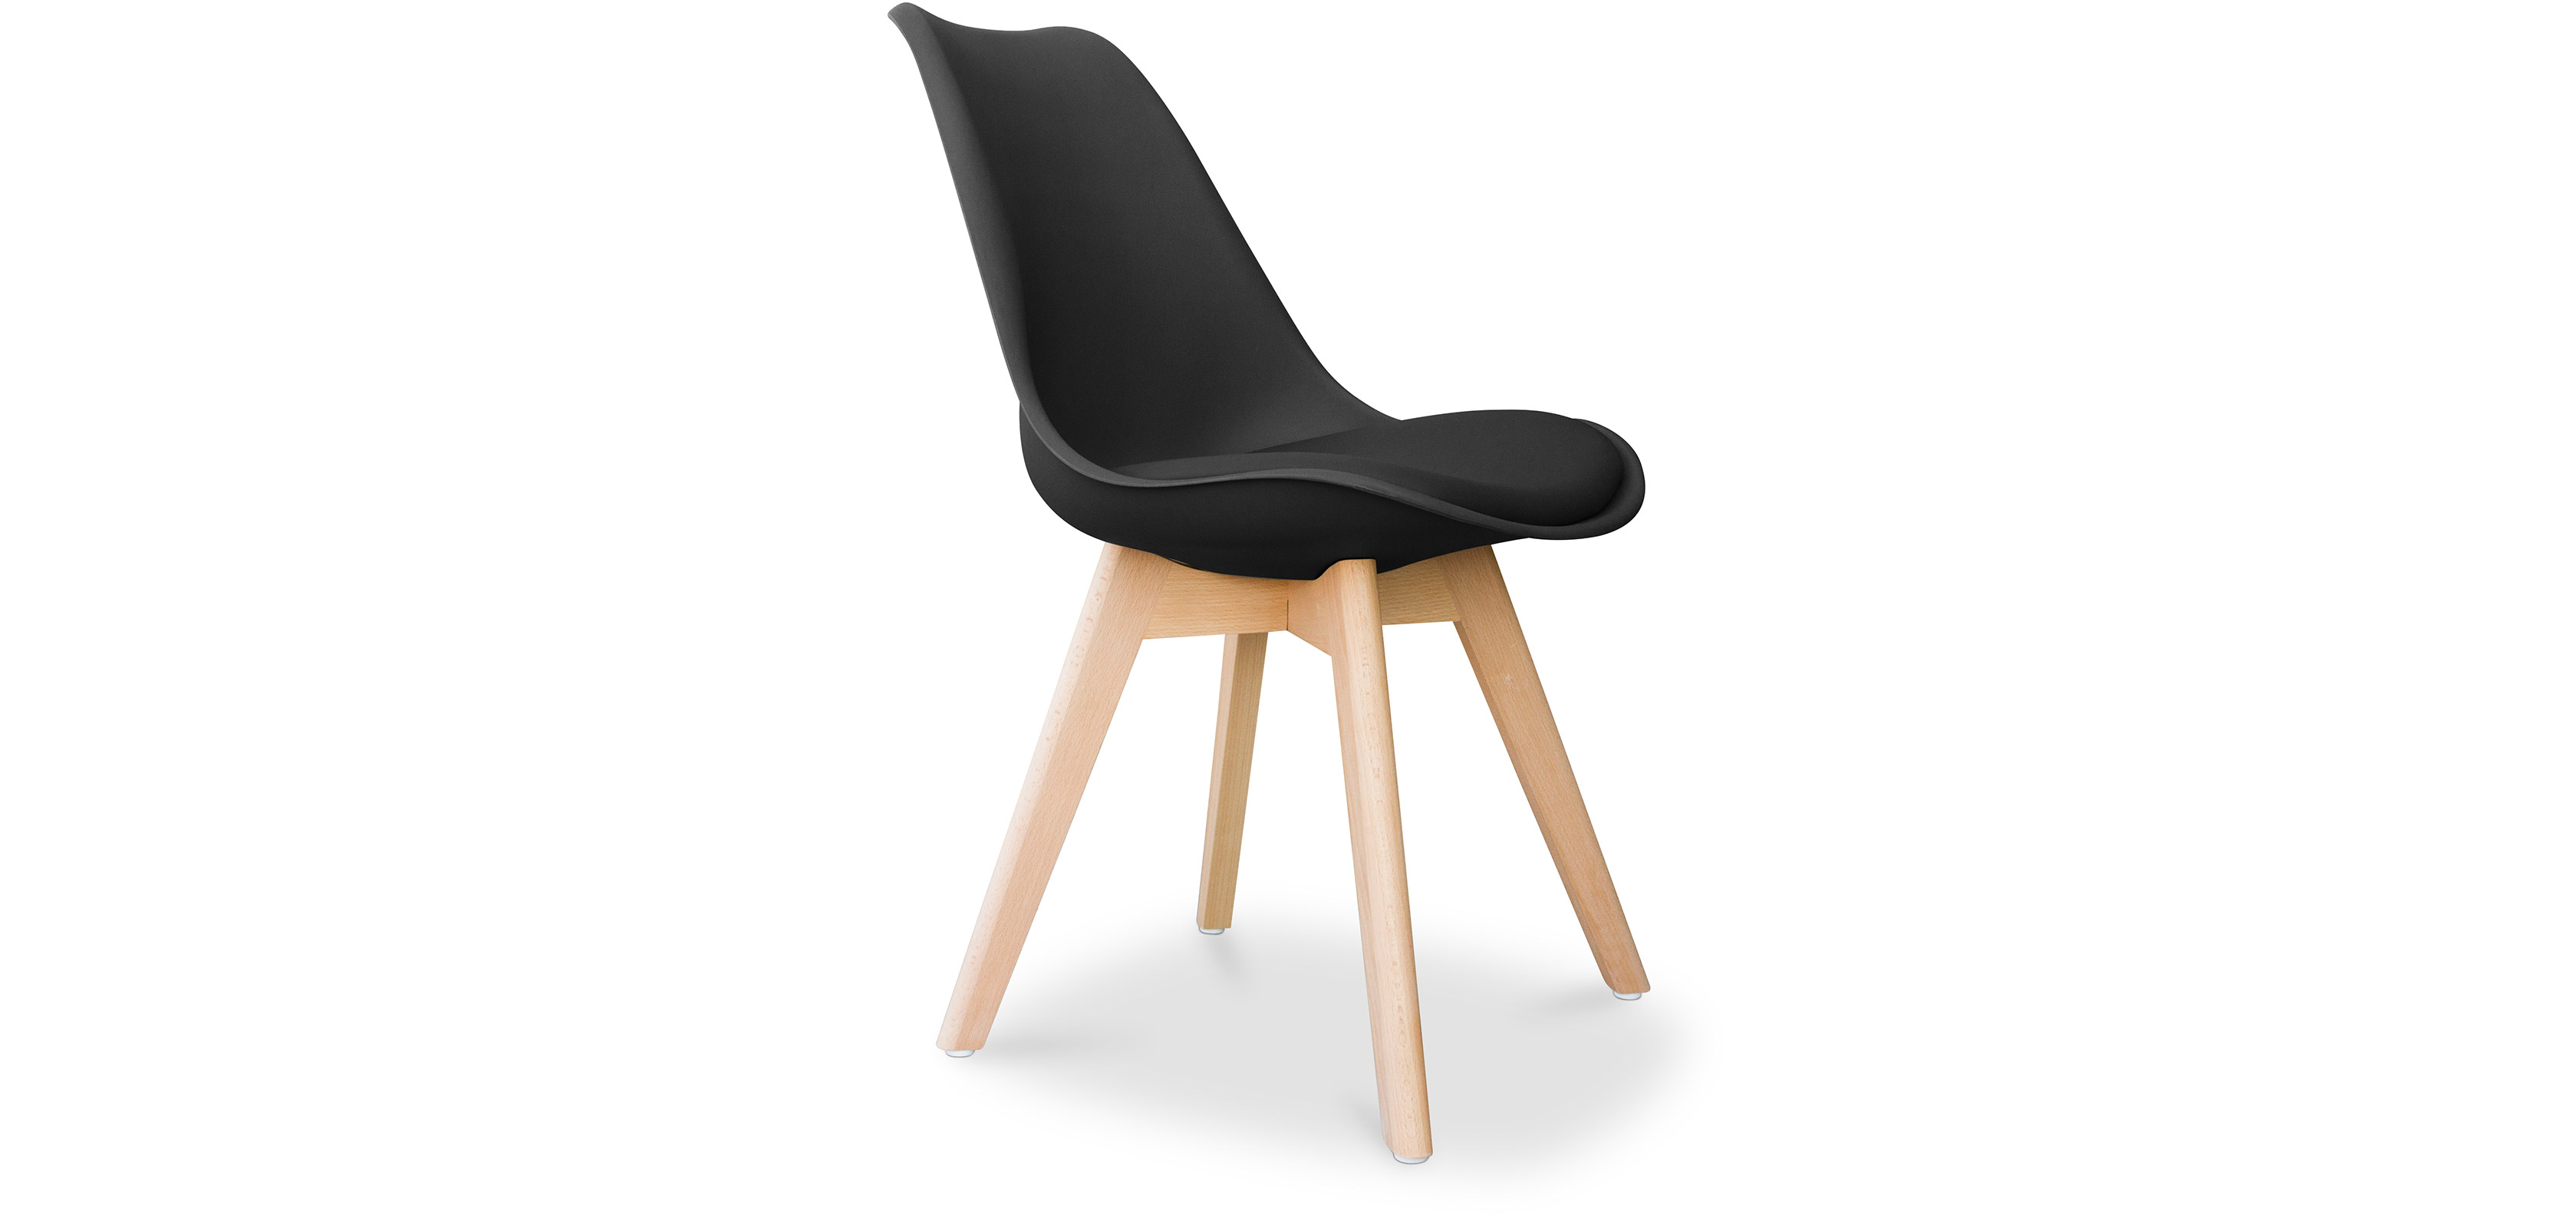 Chaise dsw avec coussin design scandinave charles eames for Chaise dsw coussin